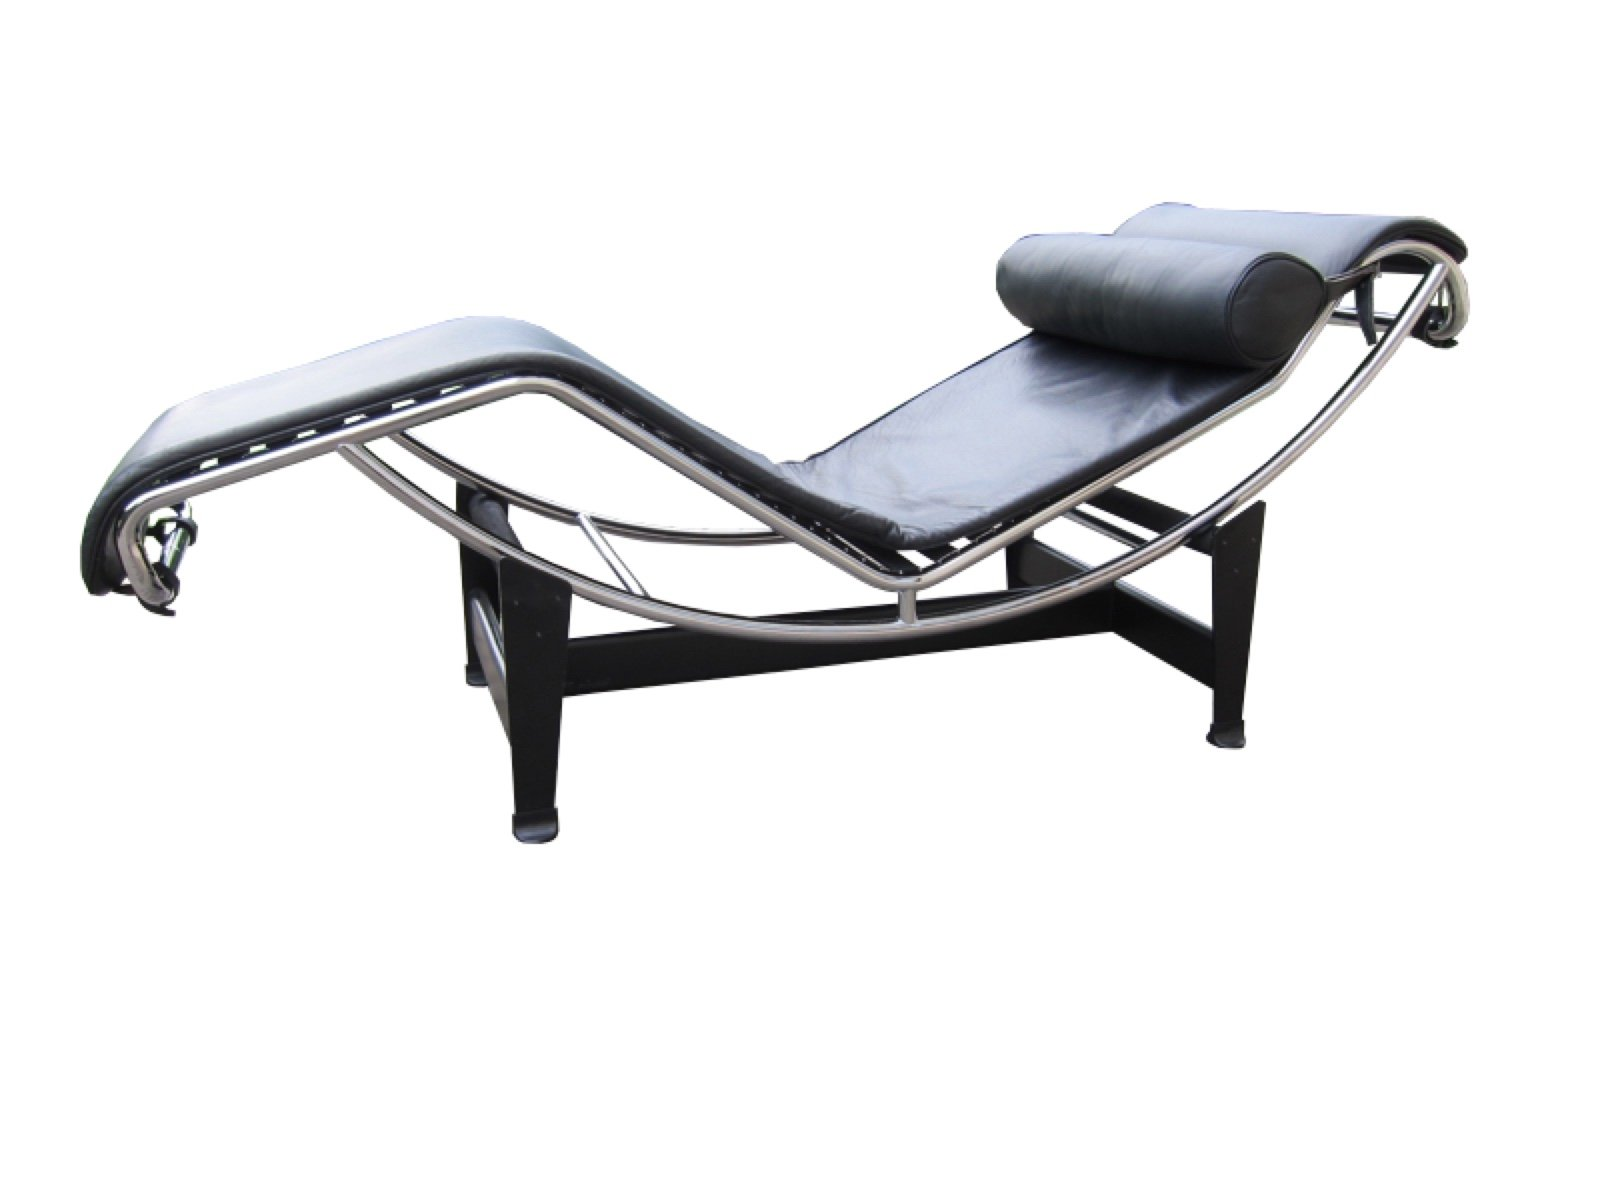 Vintage lc4 chaise longue by le corbusier pierre for Chaise longue le corbusier prezzo